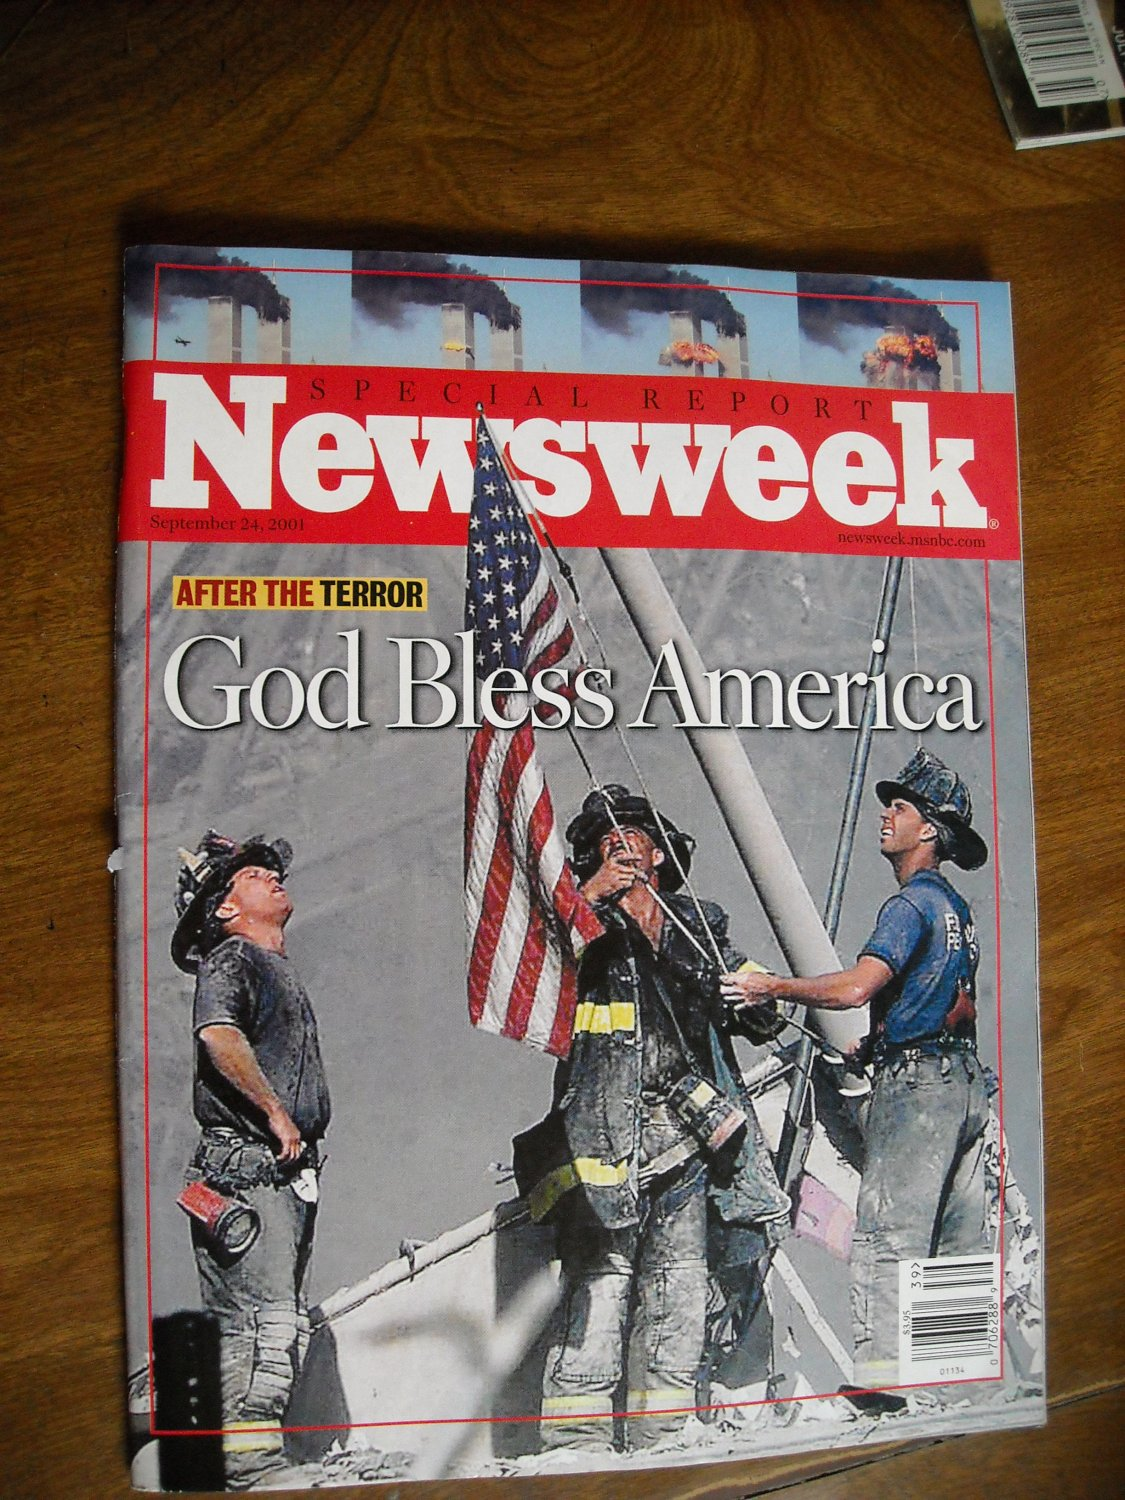 Newsweek Special Report September 2001 - After the Terror - God Bless America - 9/11 Report (G1)